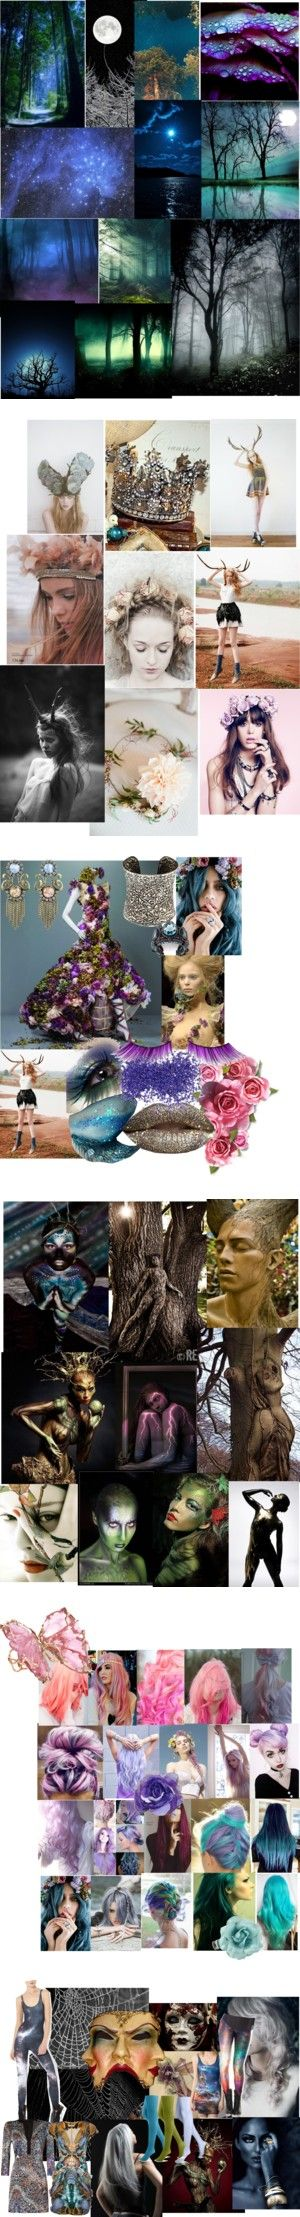 """""""A Midsummer Night's Dream Costuming Project"""" by whimsicalfun on Polyvore"""